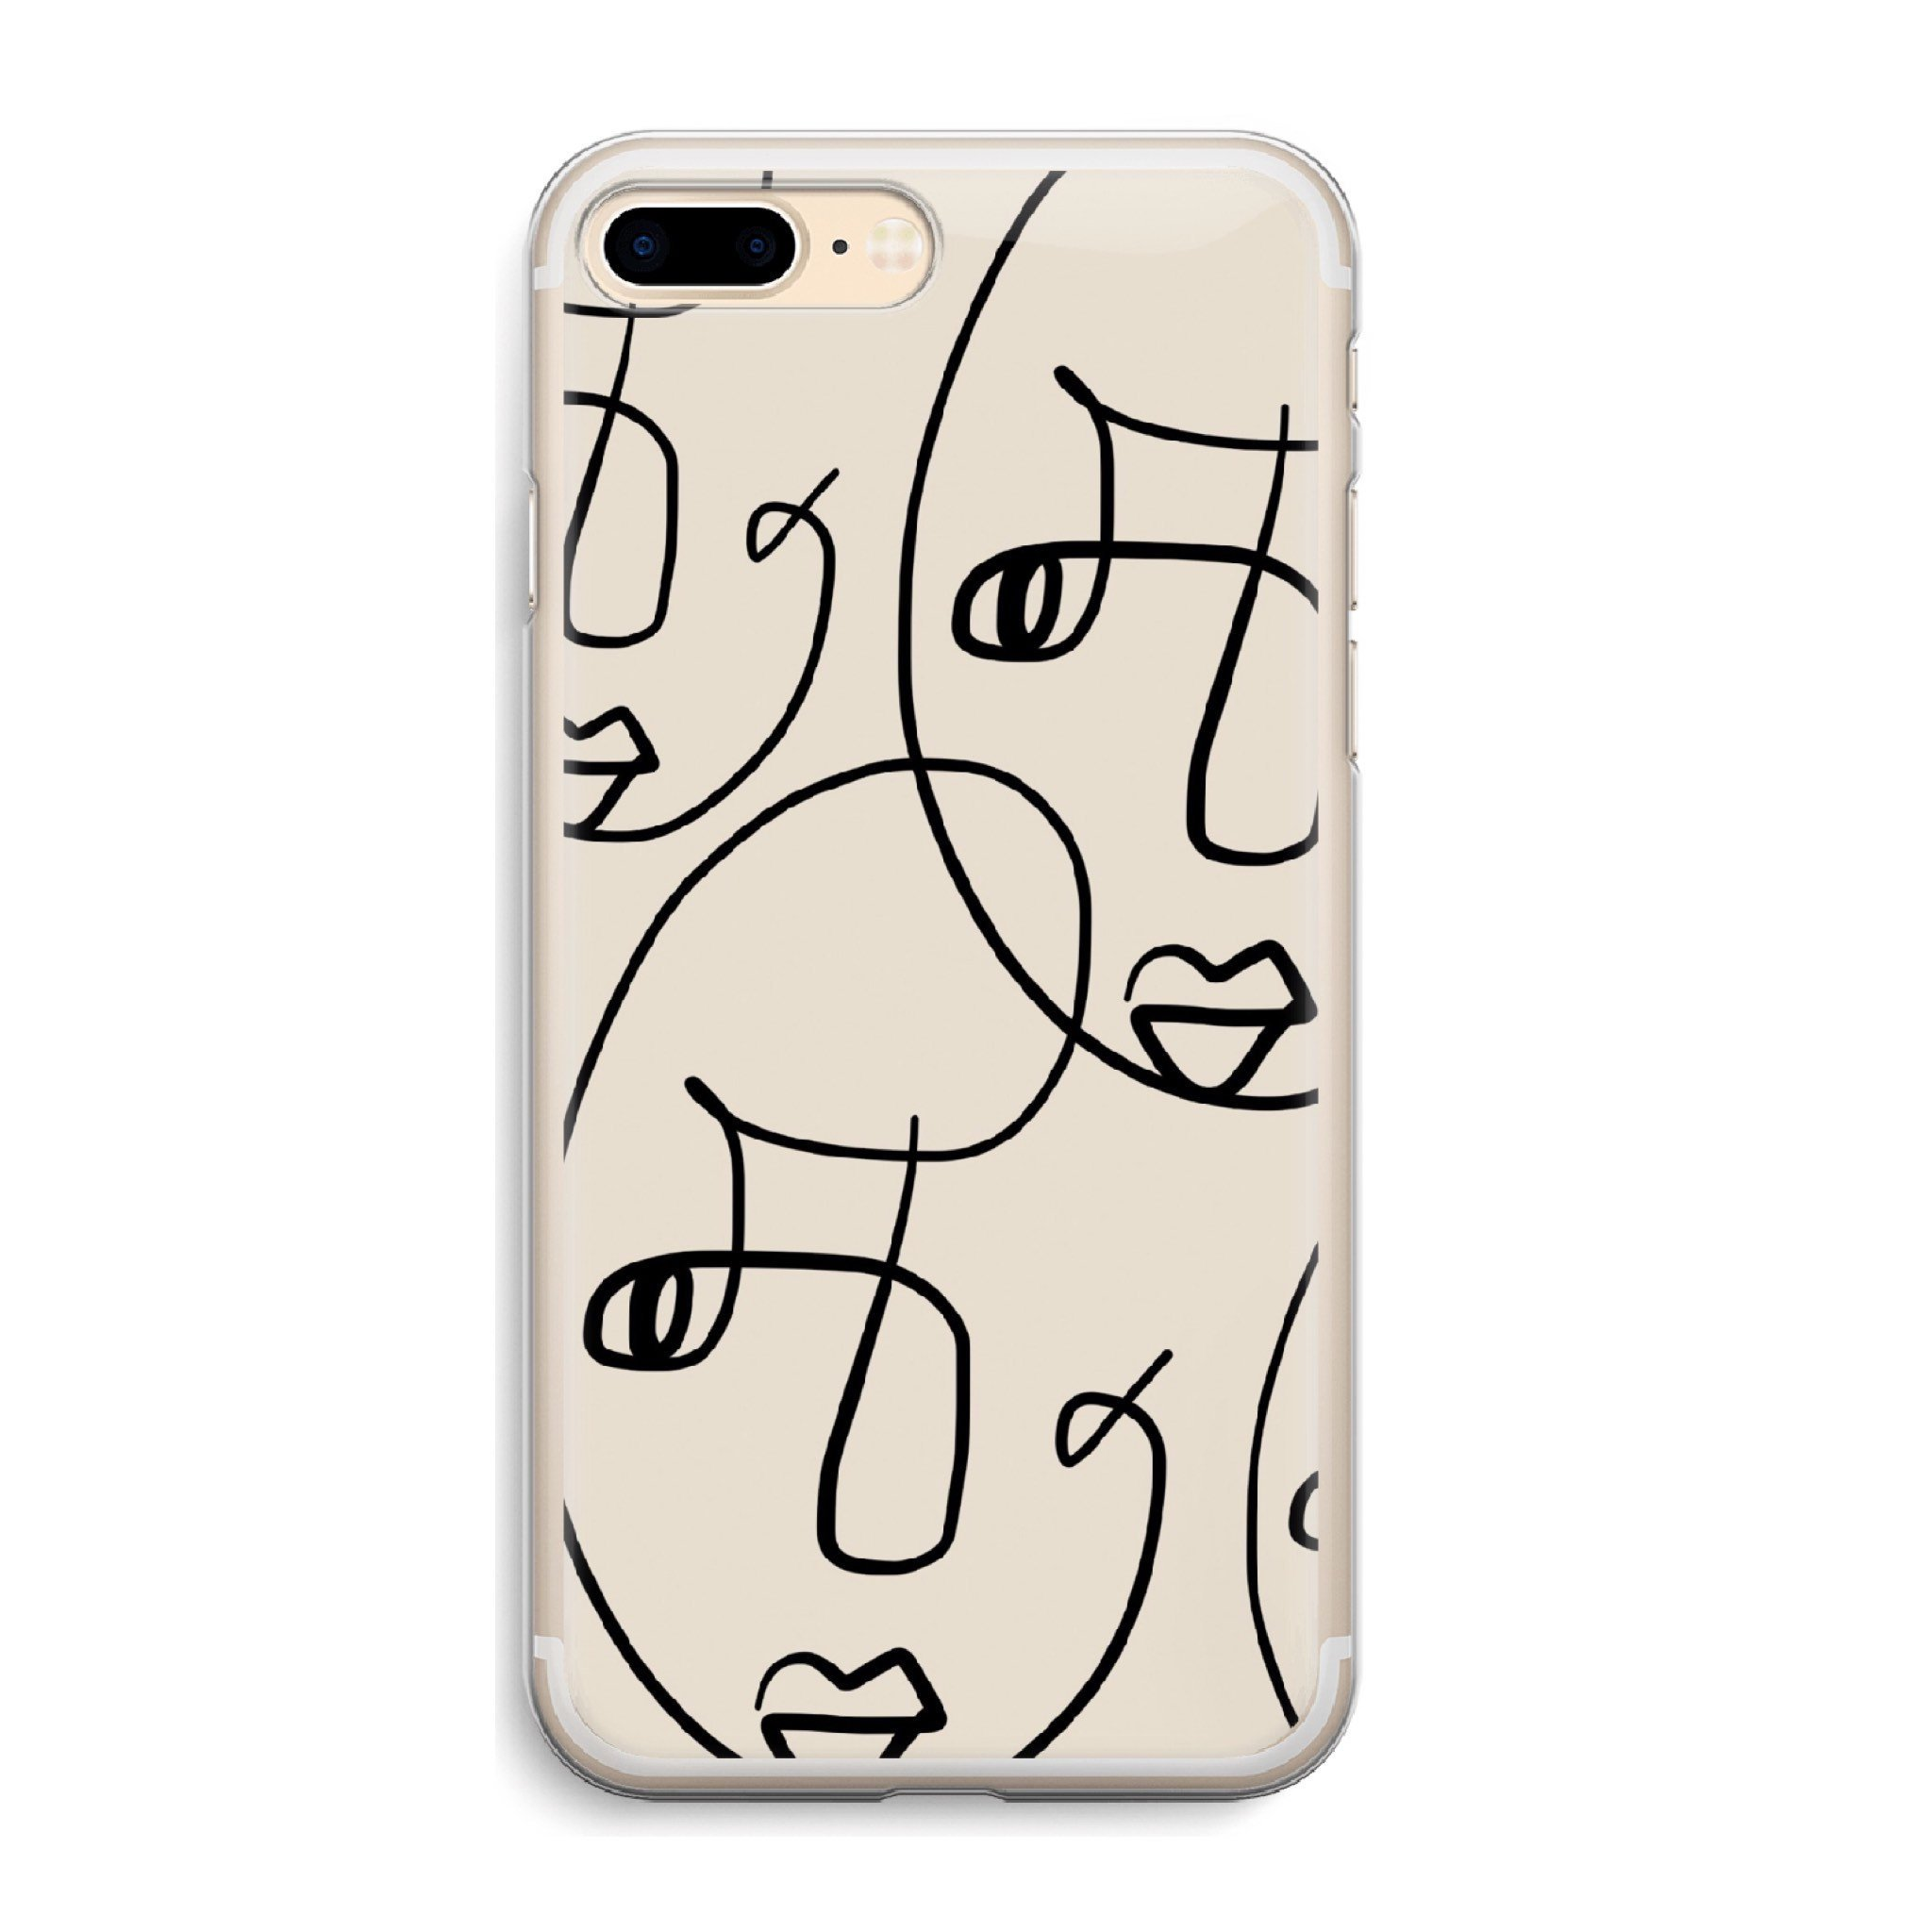 2048x2048 Face Picasso Iphone Case Line Art Abstract Drawing Phone Cases Etsy